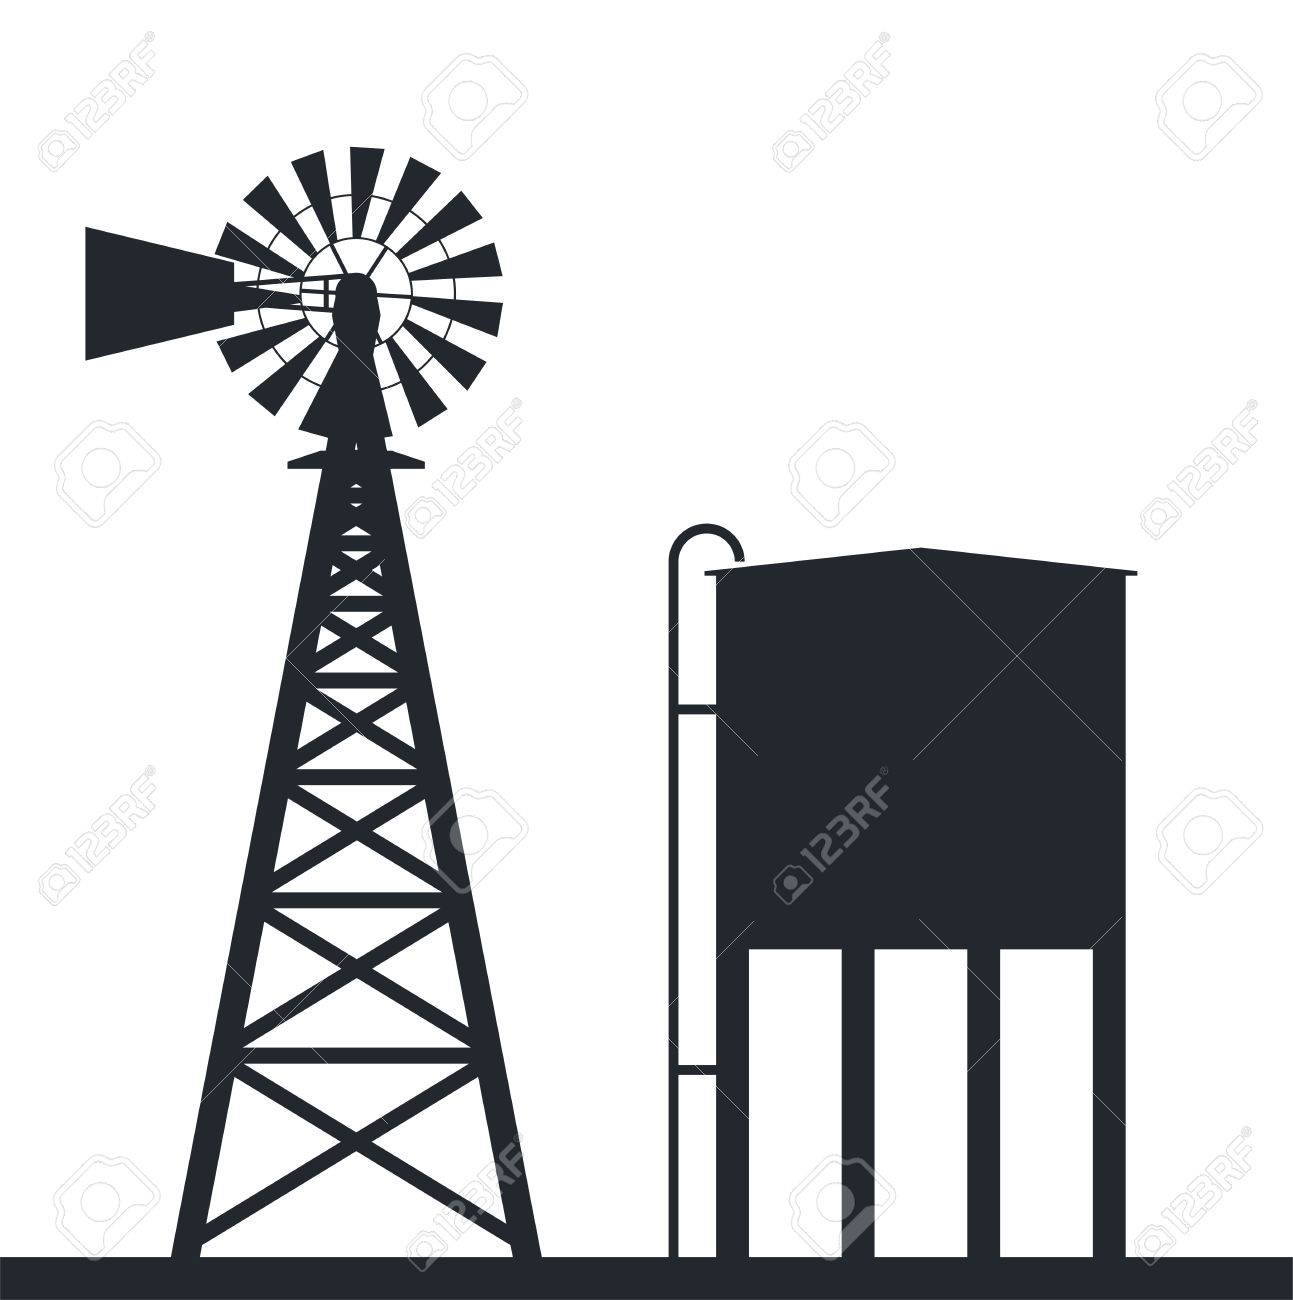 black and white background of rural wind pump and water tank - 63224049